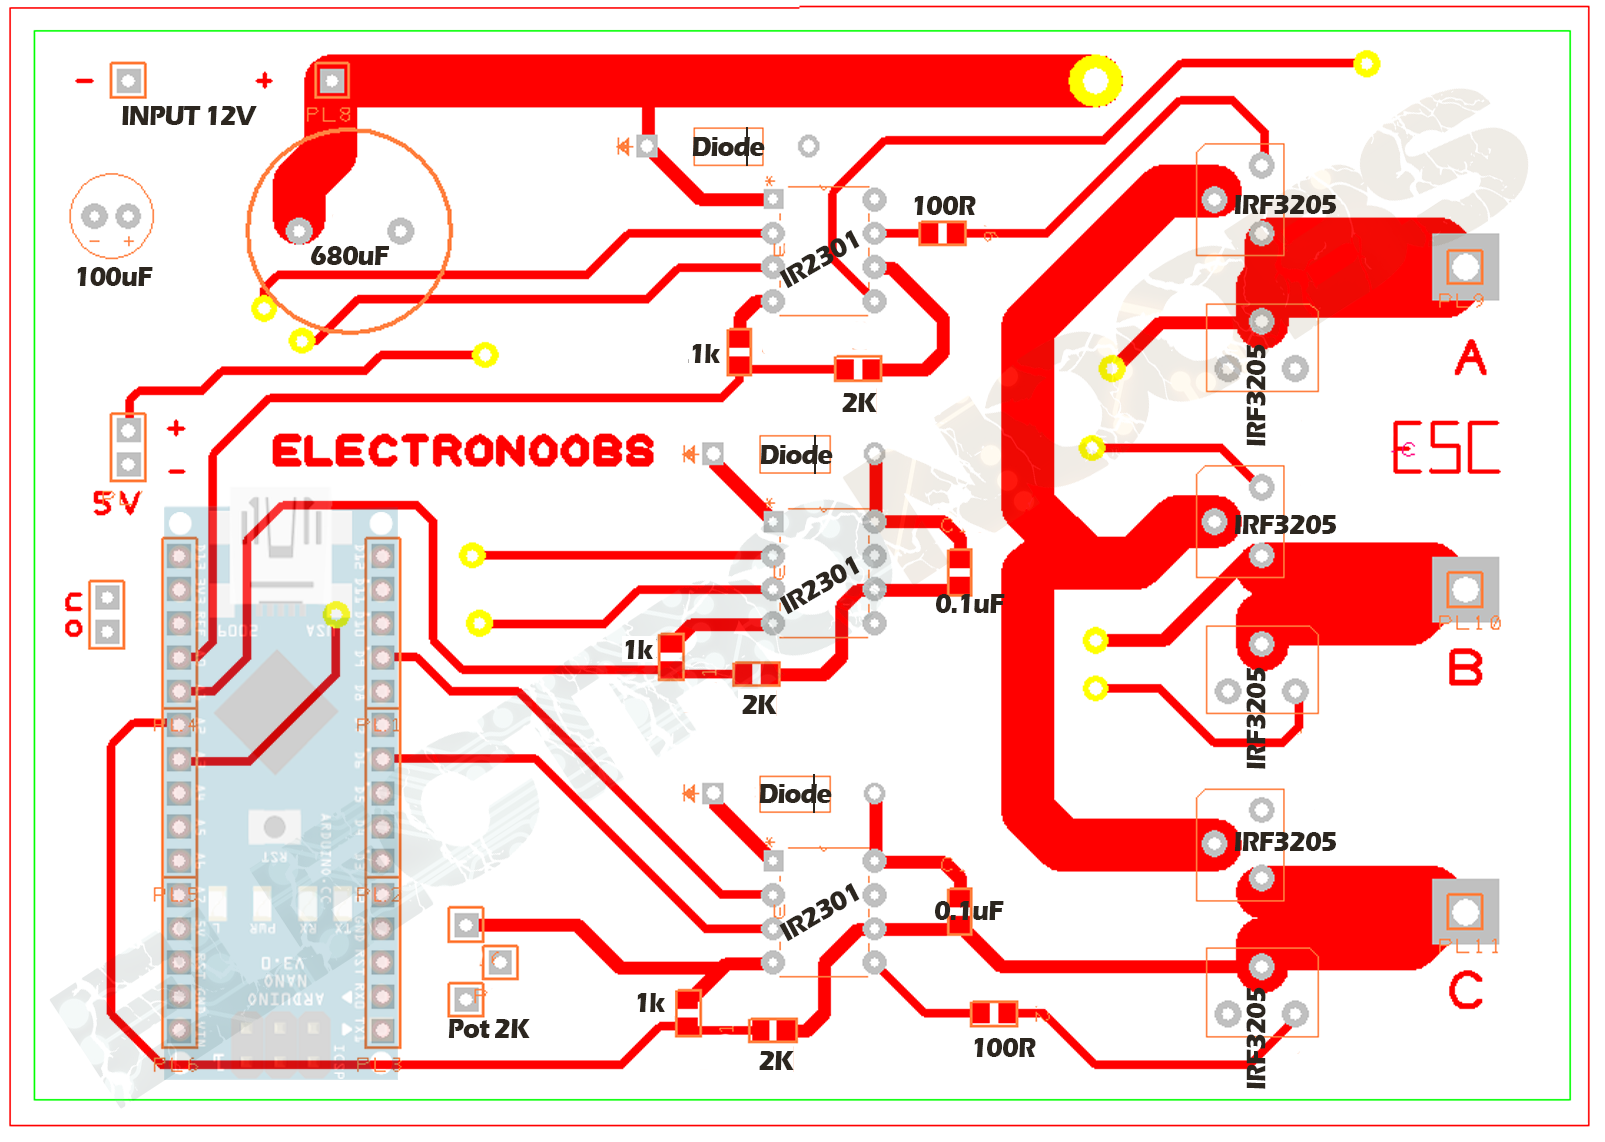 Electronic Speed Controller With Arduino Homemade Control For Pcb Drill Circuits And Diagram Create A Two Layer Distribute All Components In The Next Photo We Have Top Ive Added Values Each